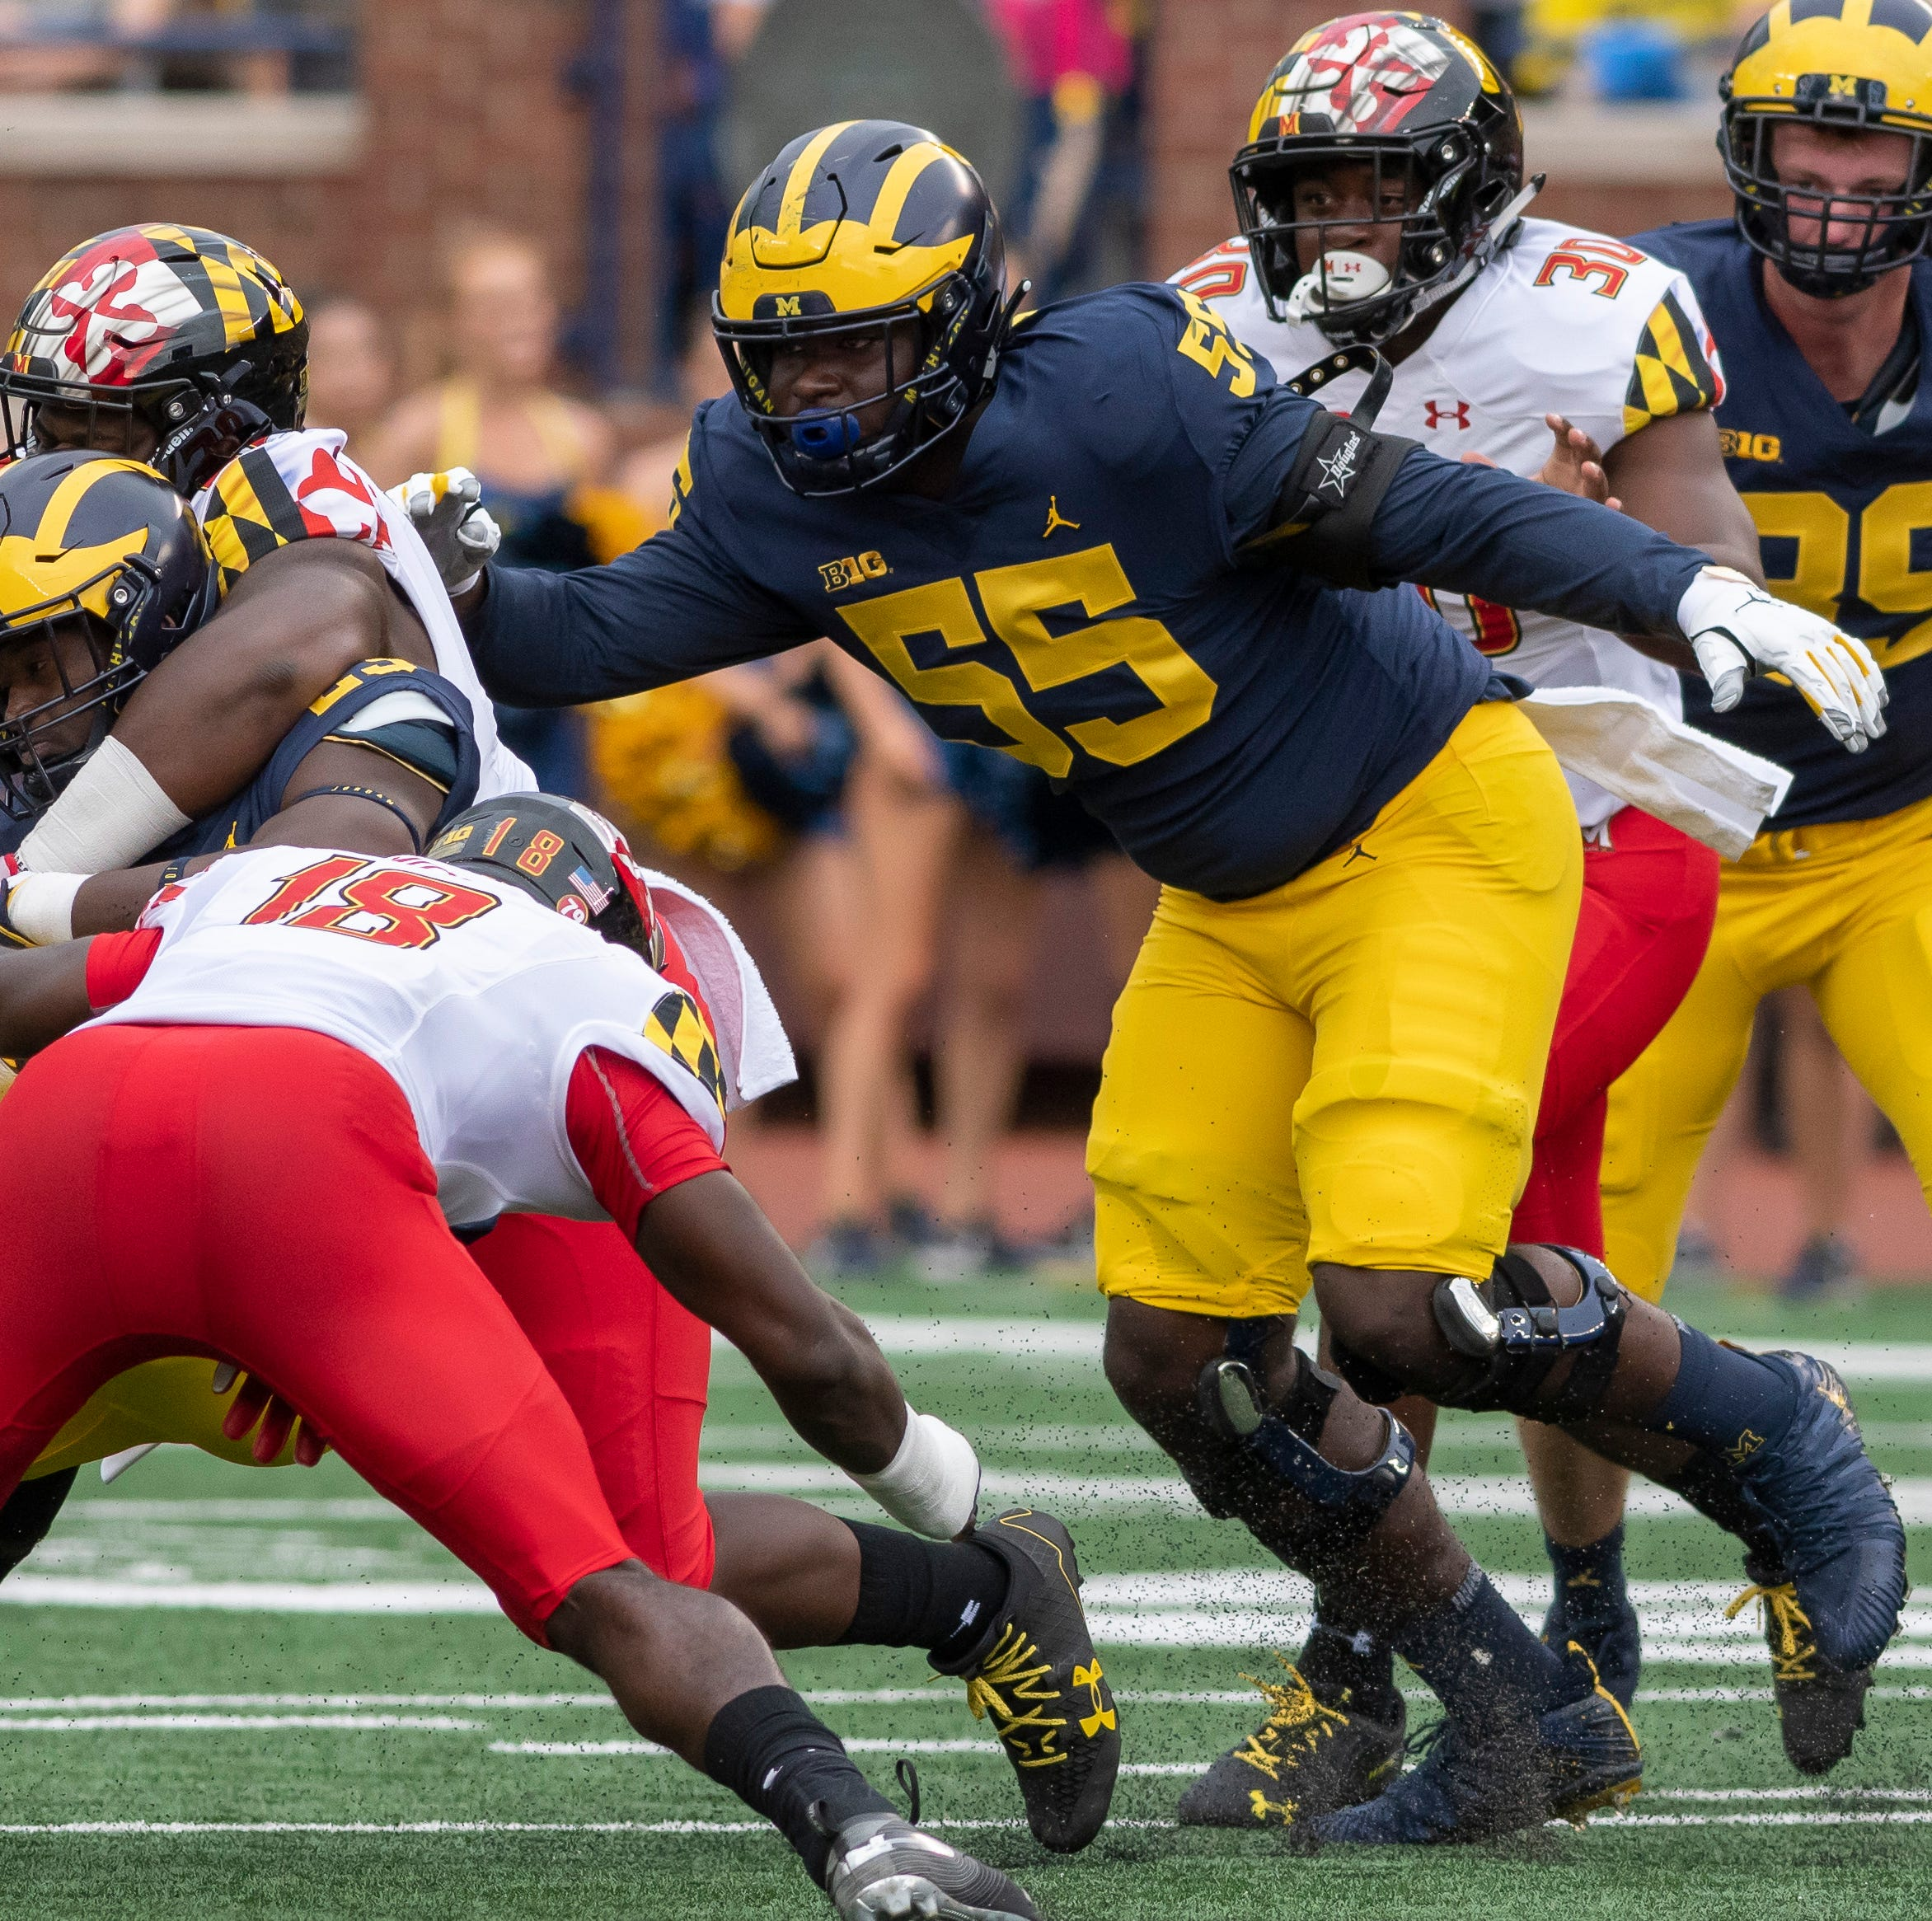 Offensive tackle James Hudson latest to transfer from Michigan